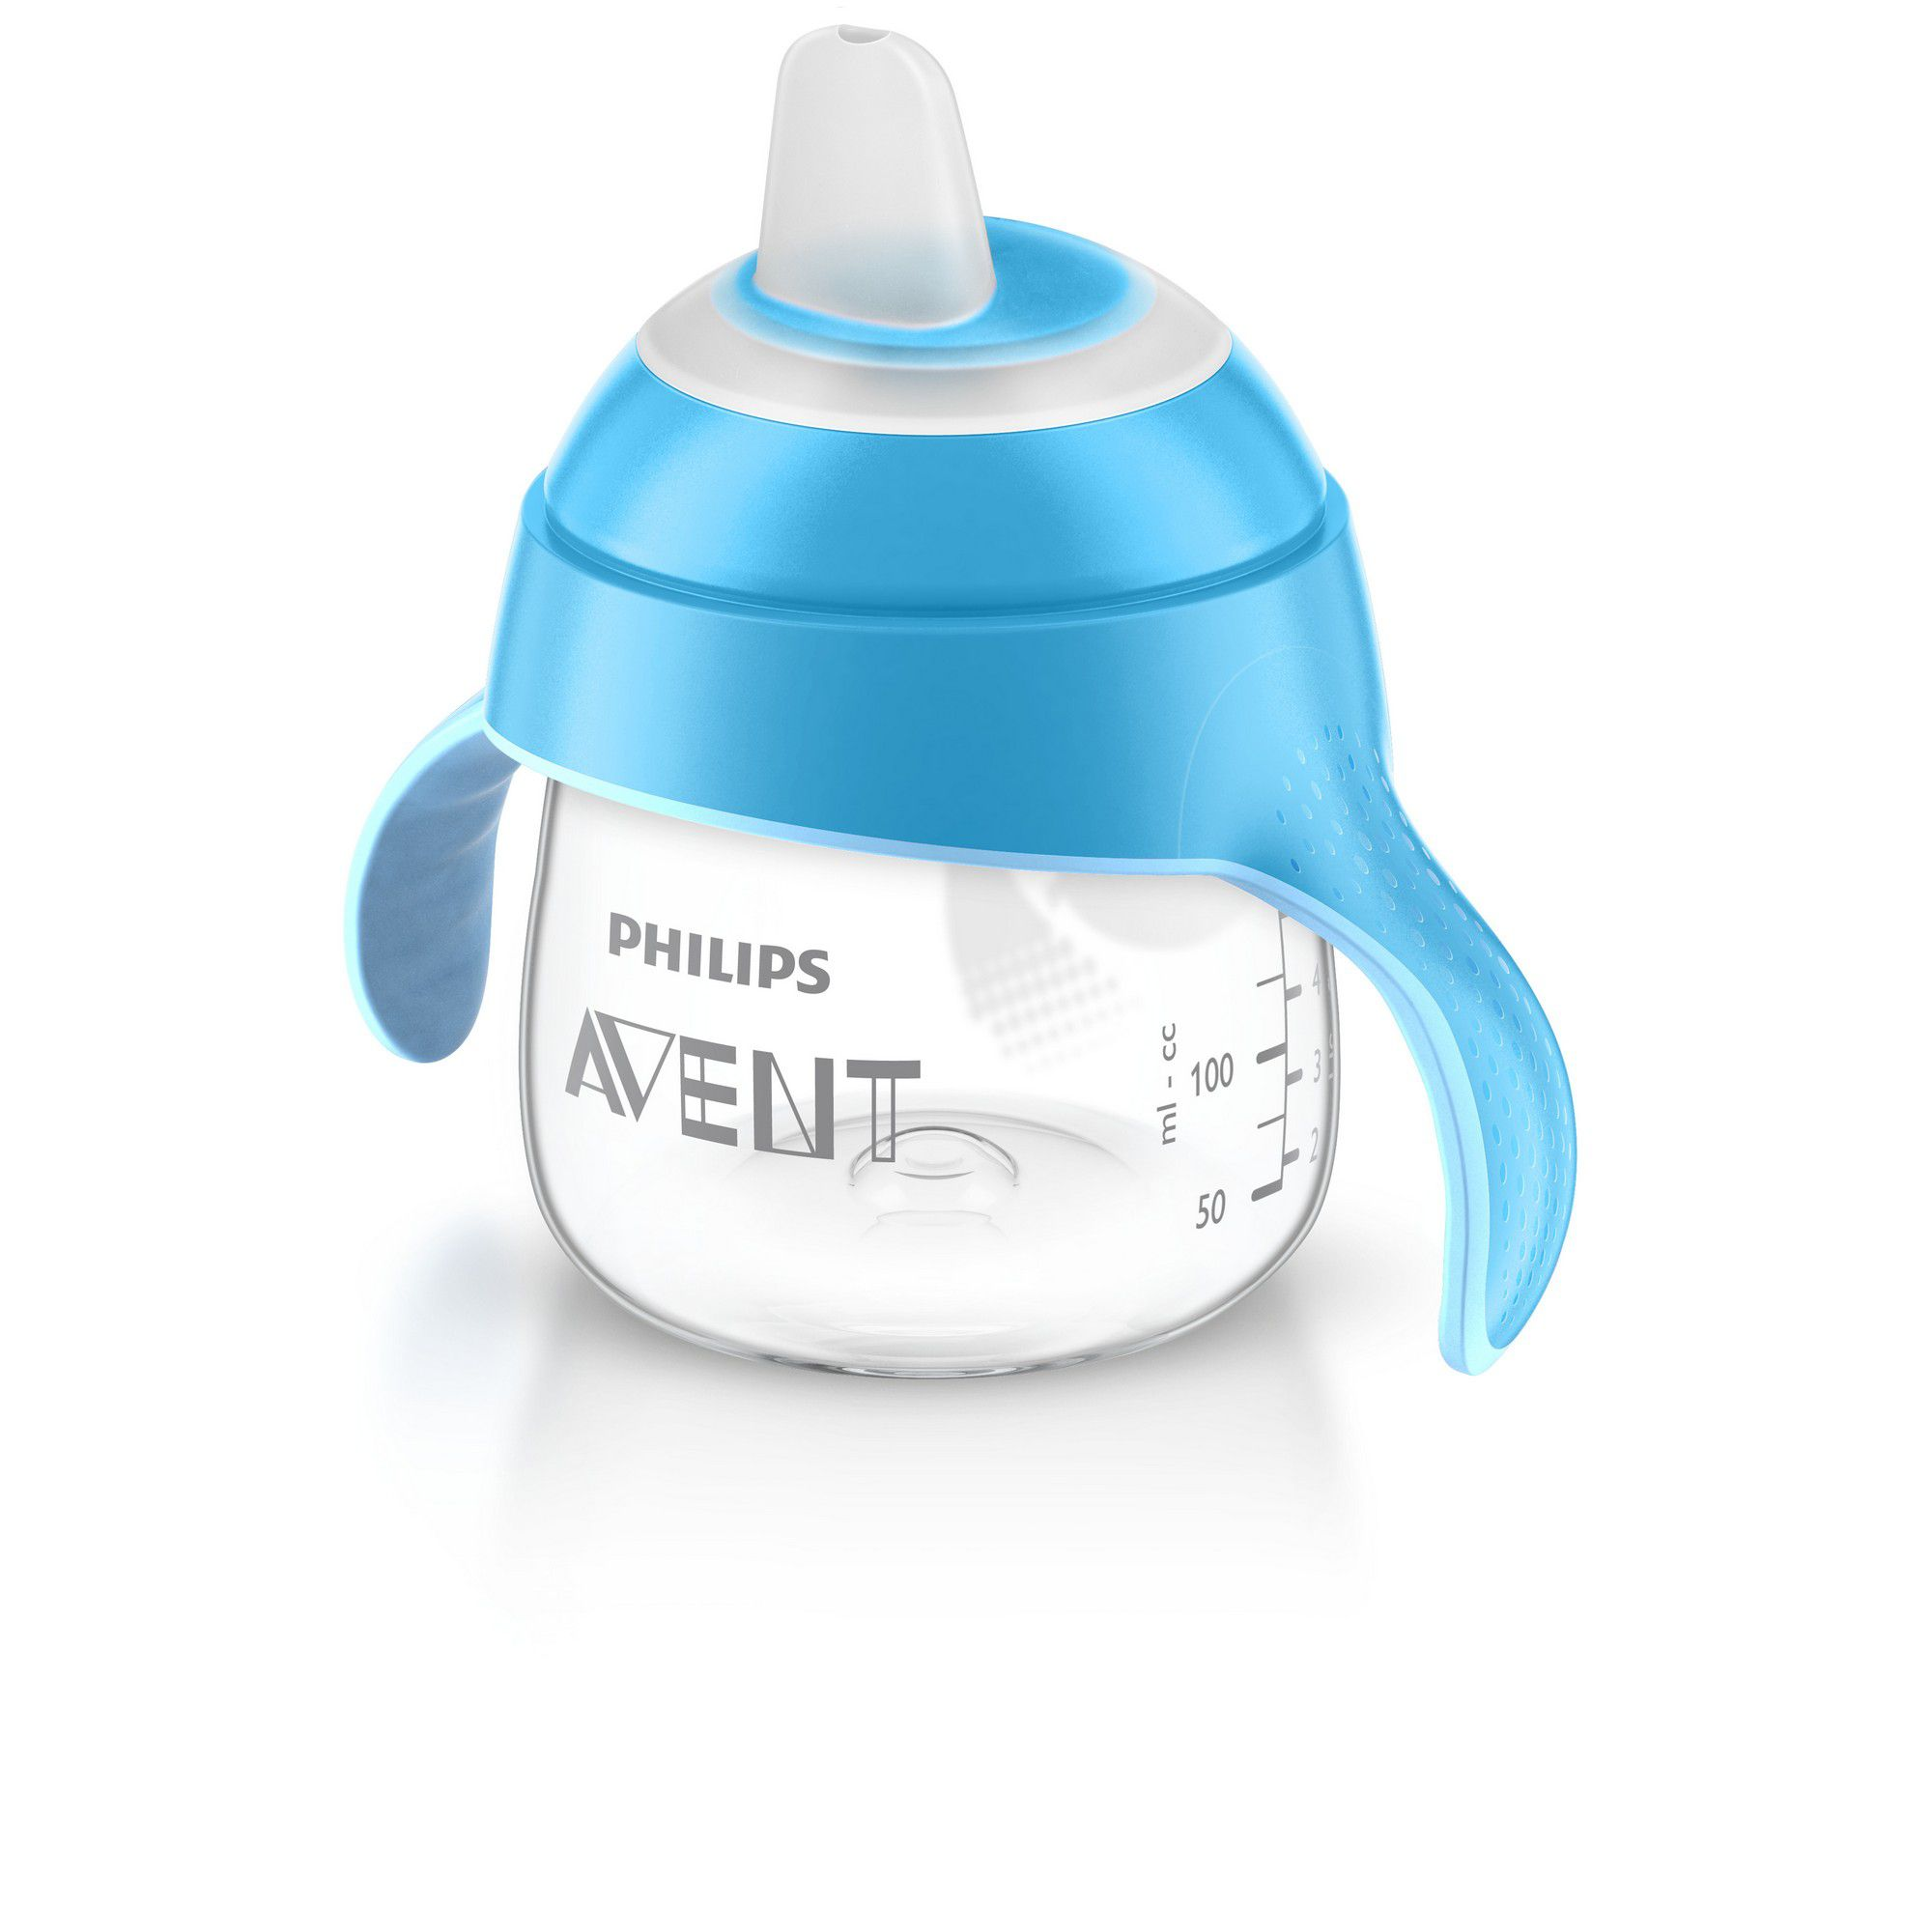 COPO PINGUIM 200ML AVENT 6M+ REF:751/05